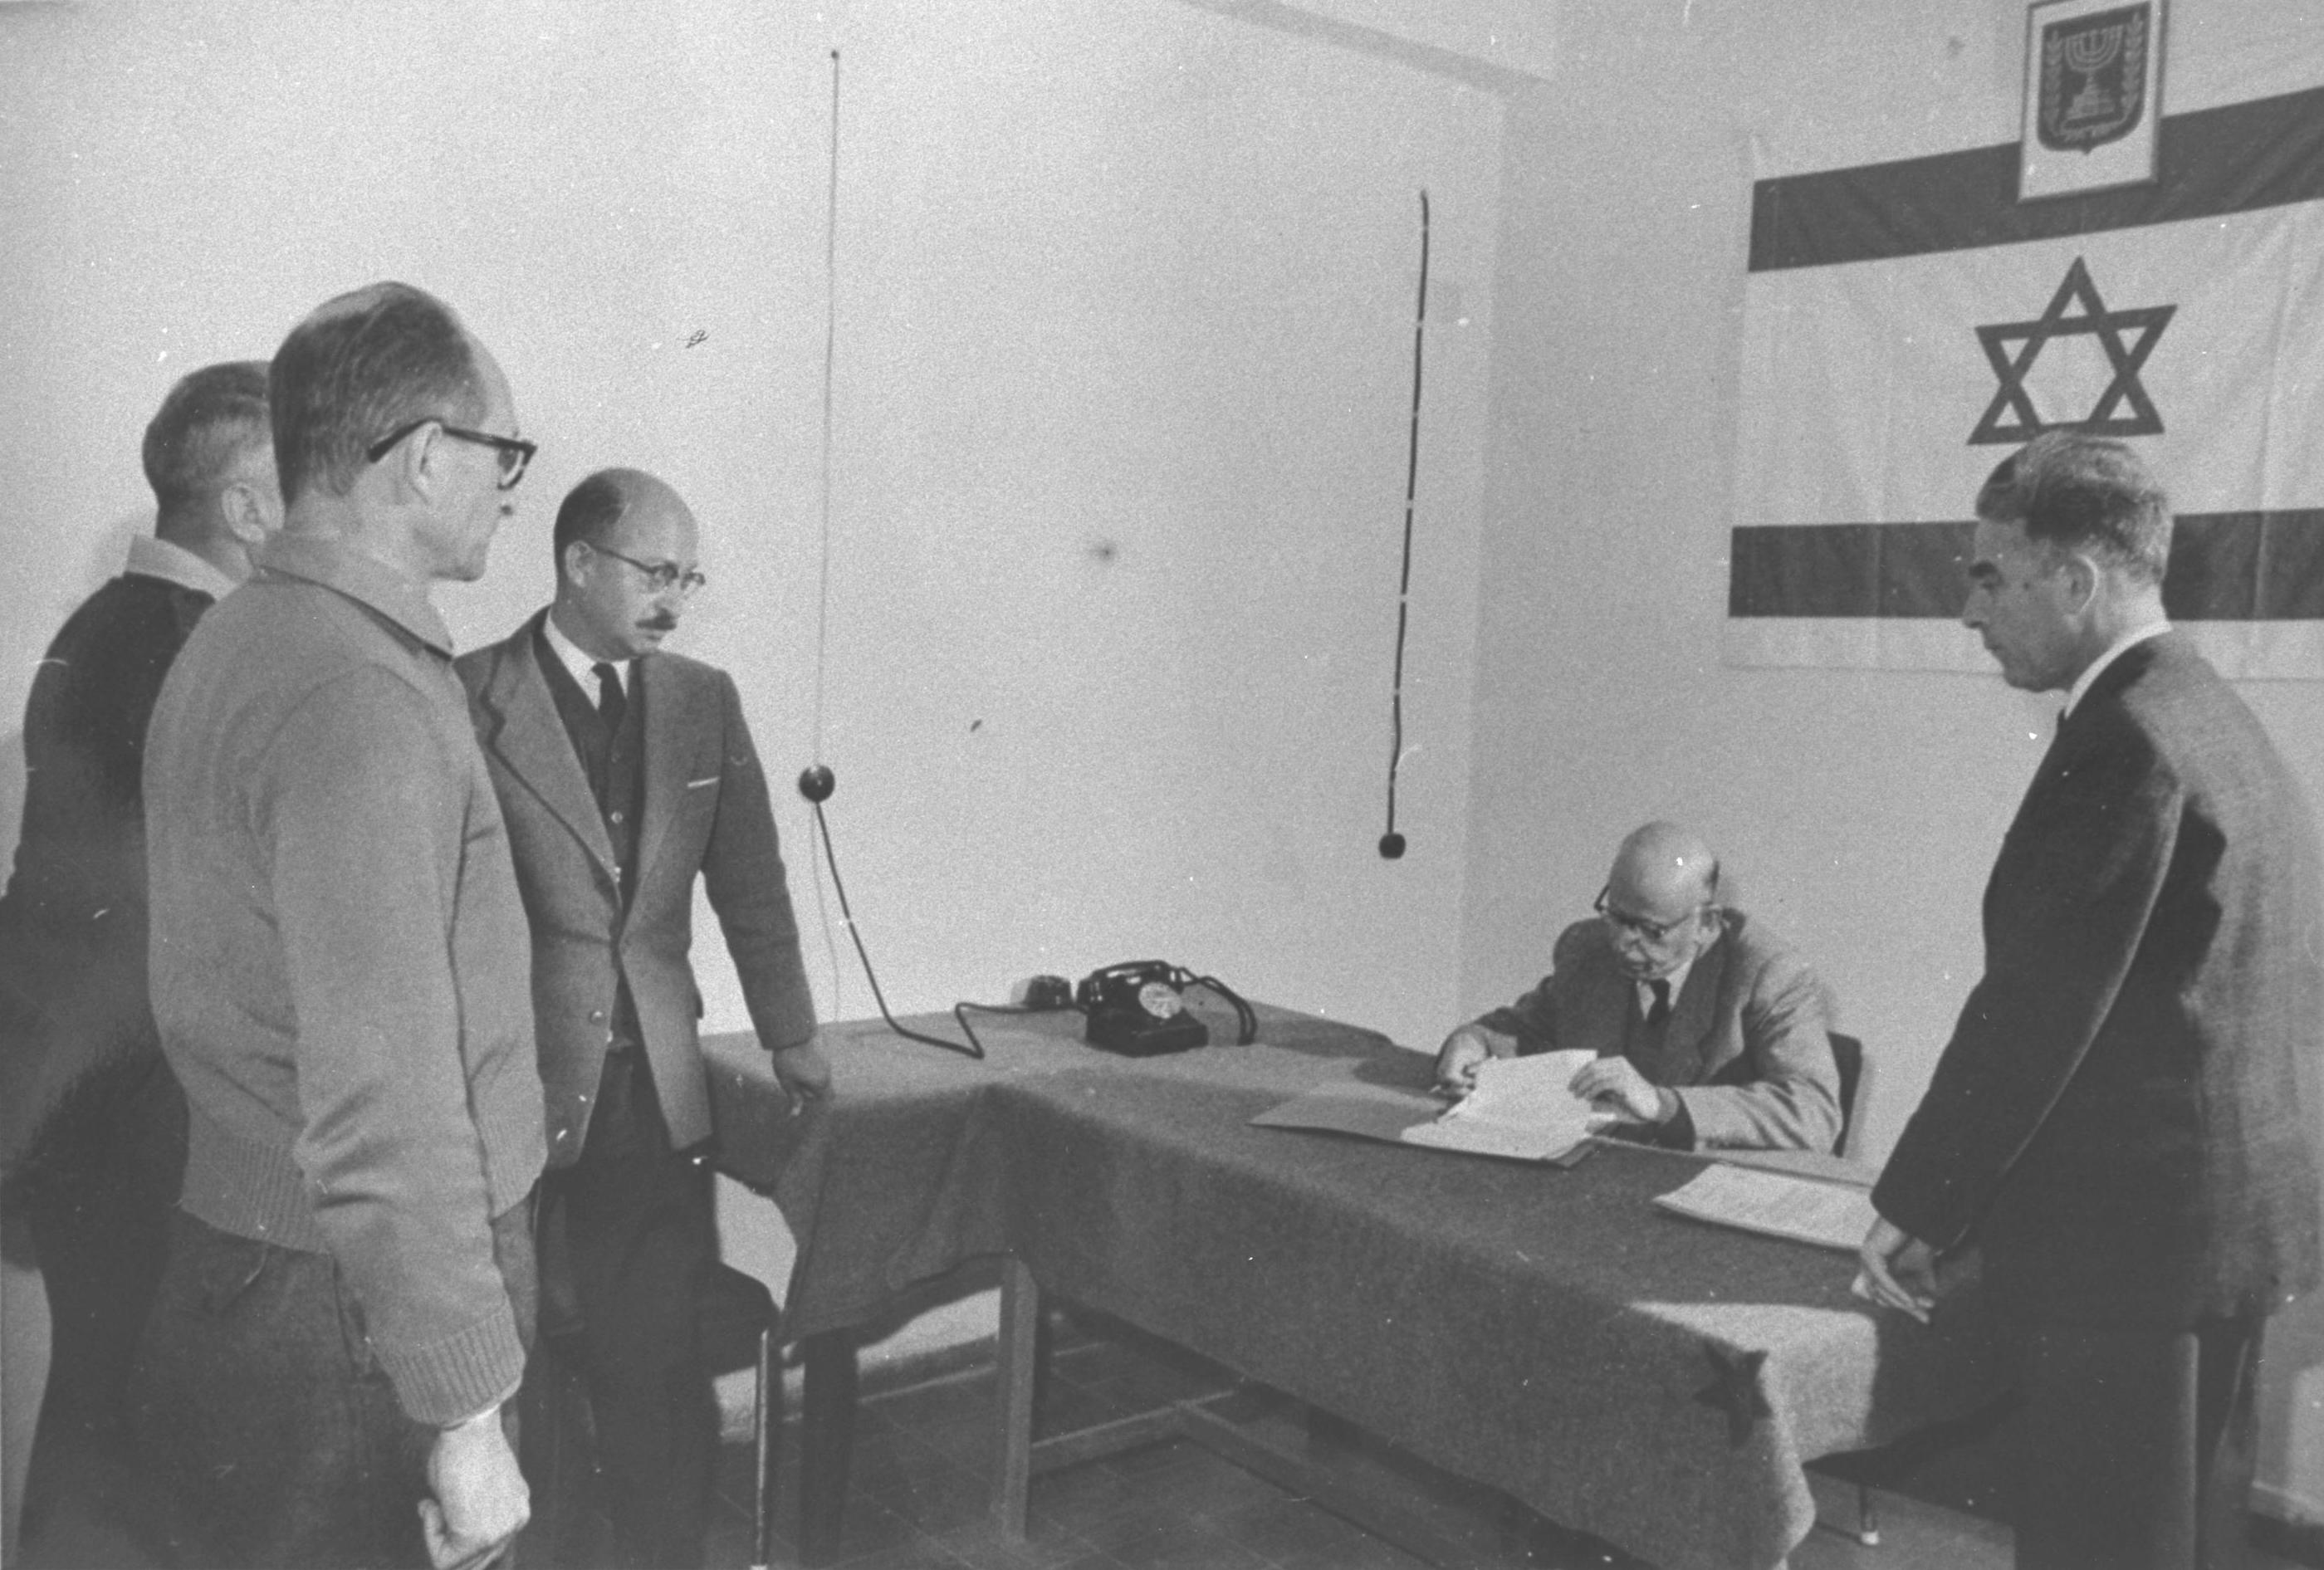 http://upload.wikimedia.org/wikipedia/commons/3/38/Adolf_Eichmann_extension_of_arrest1961.jpg